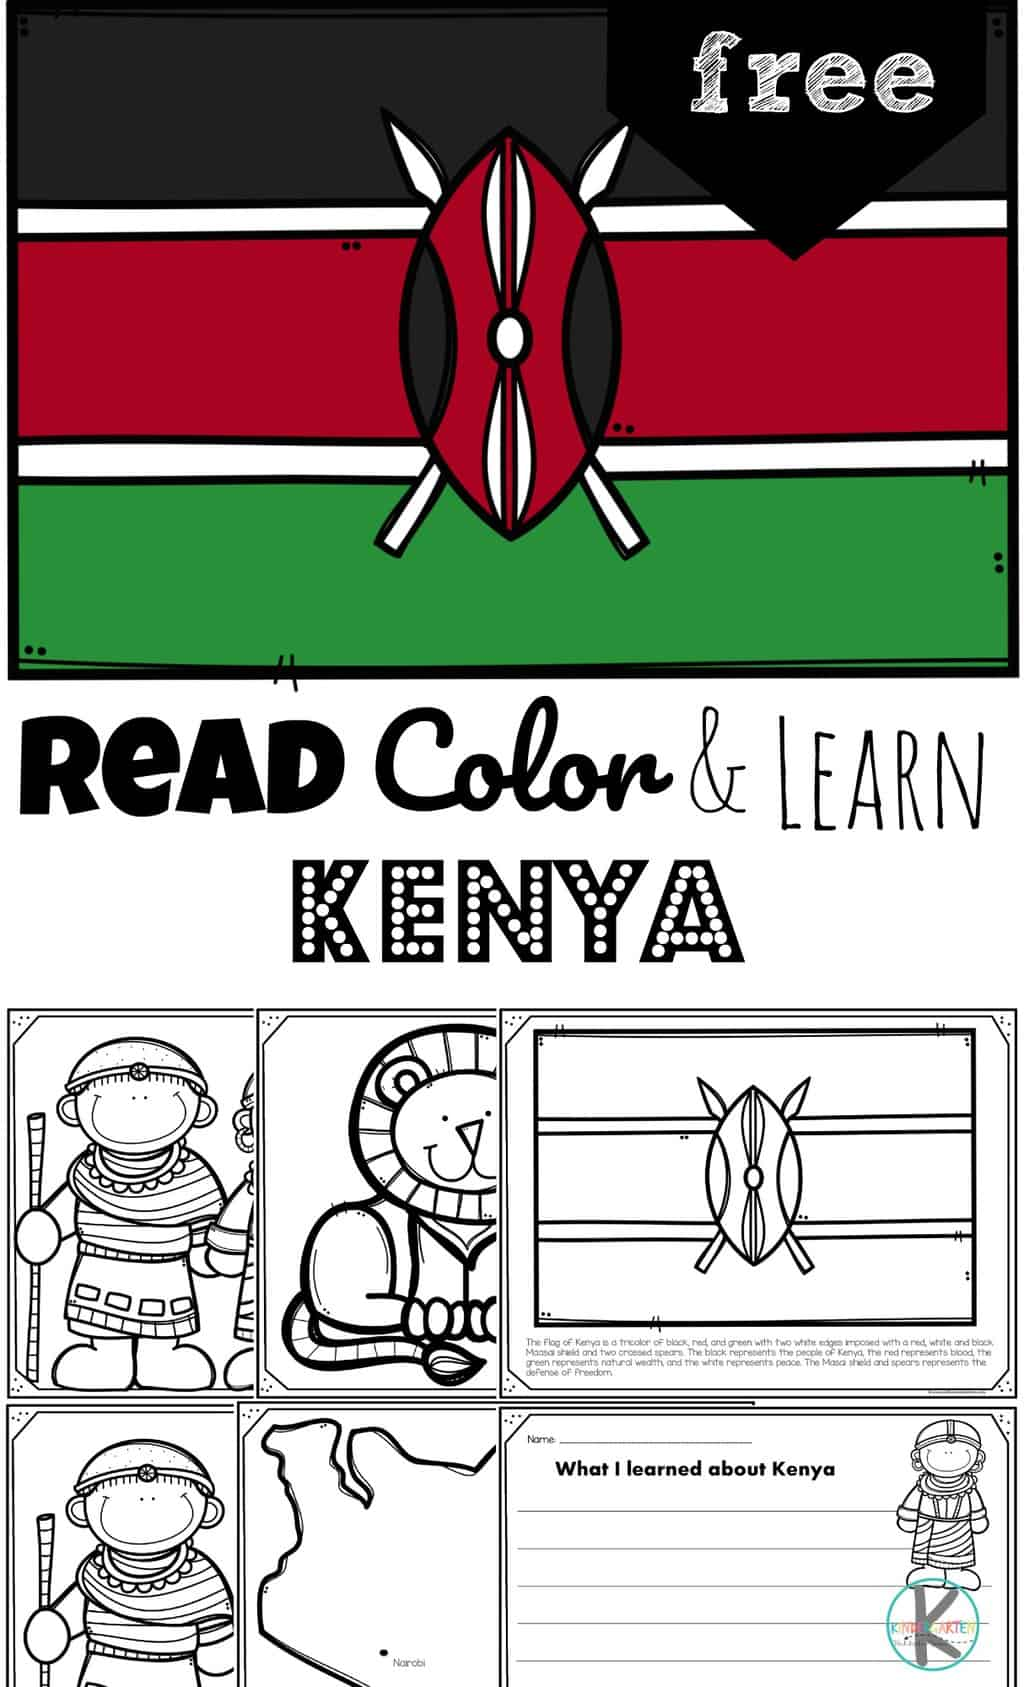 Free Read Color And Learn About Kenya